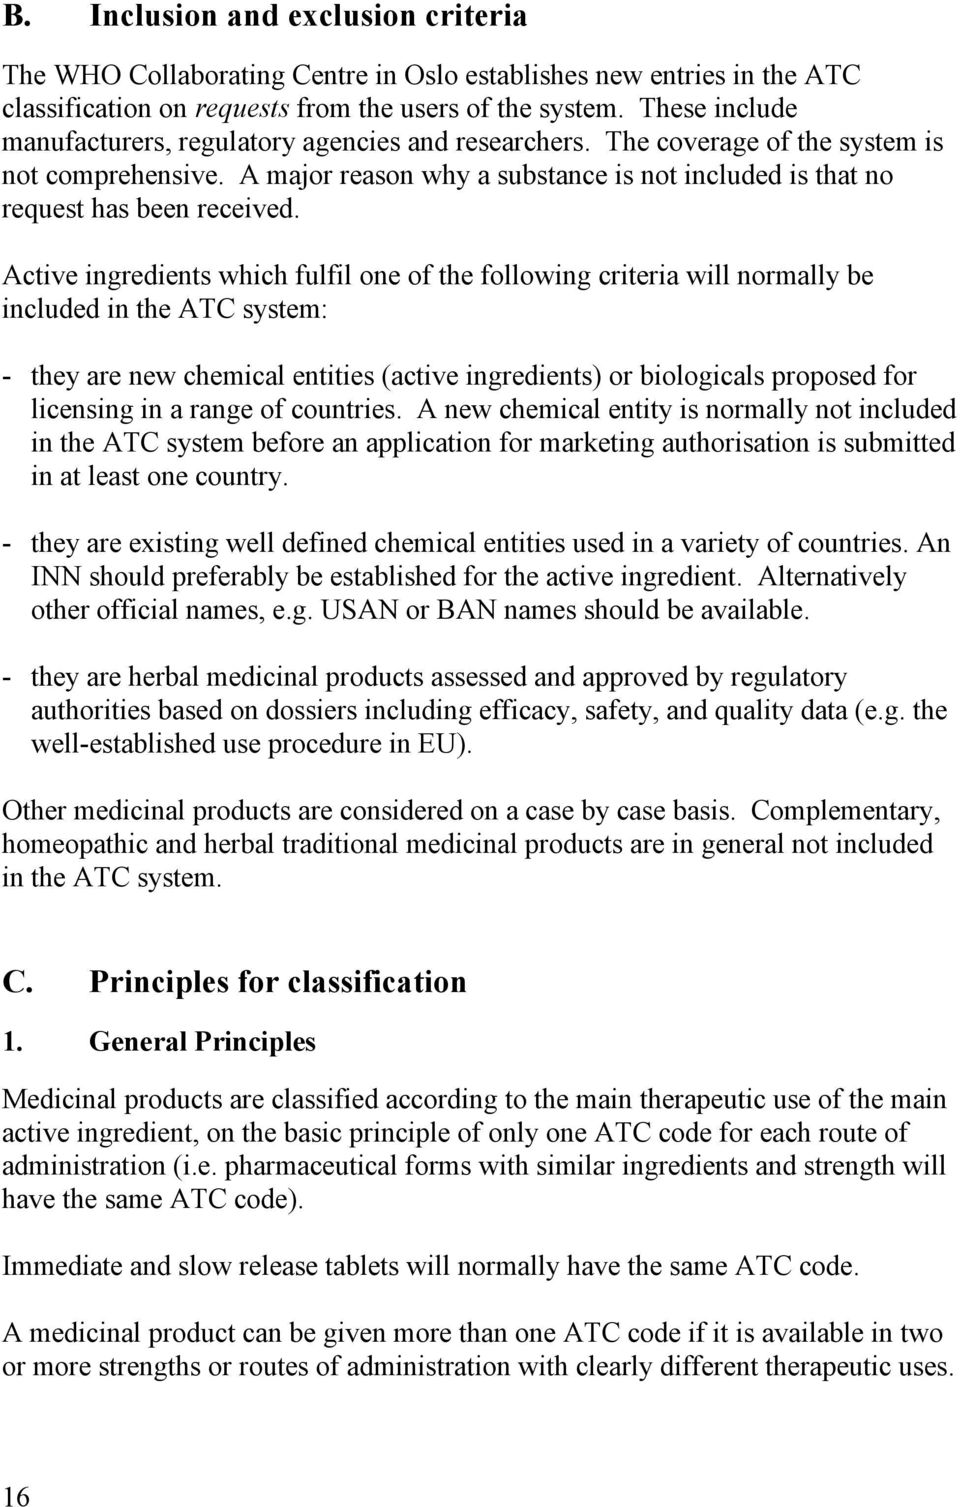 Active ingredients which fulfil one of the following criteria will normally be included in the ATC system: - they are new chemical entities (active ingredients) or biologicals proposed for licensing